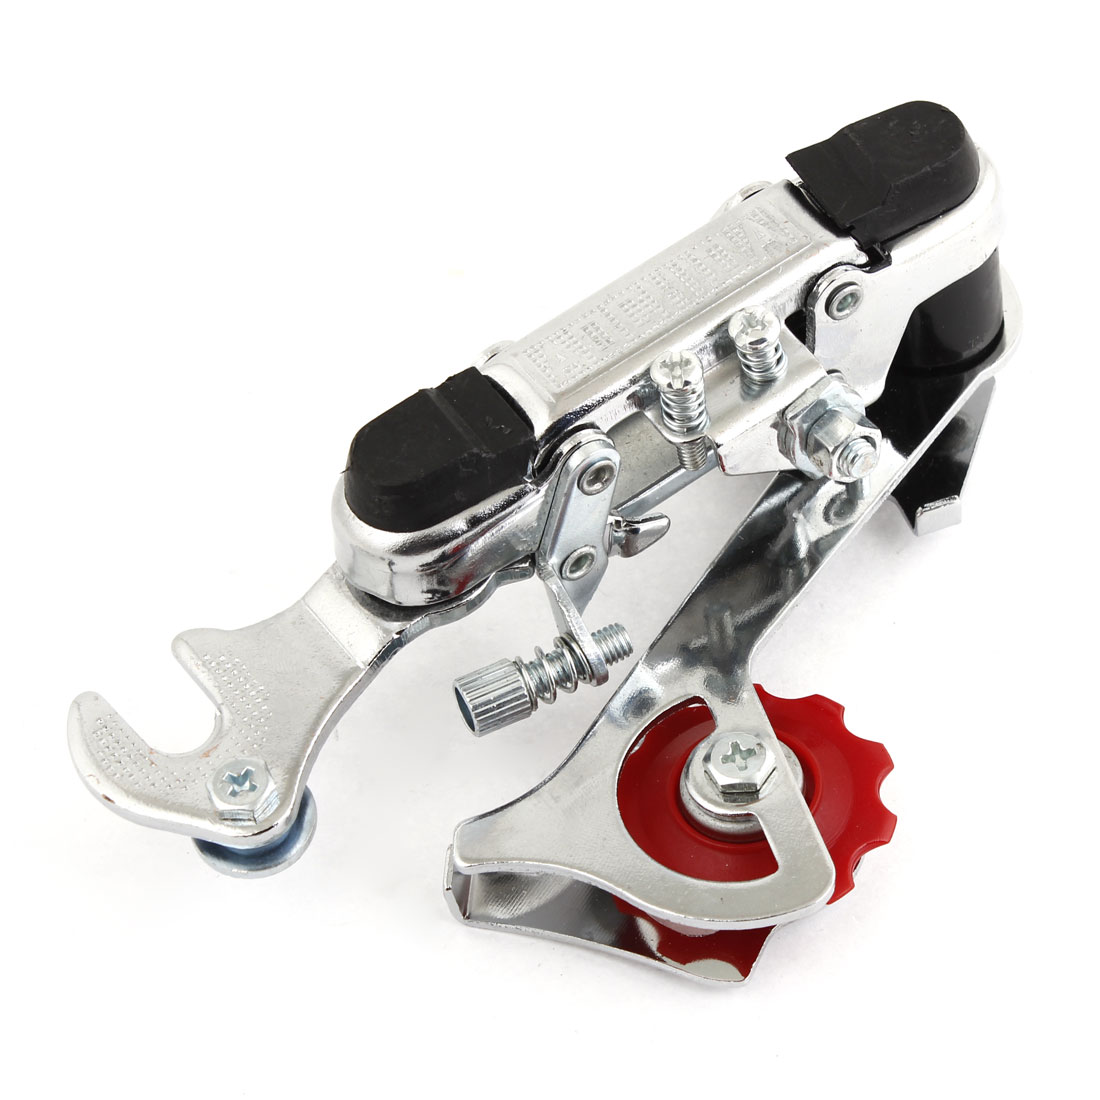 Shimano Deore Shift Levers 18 Speeds Rear Derailleur for Variable Speed Bicycle